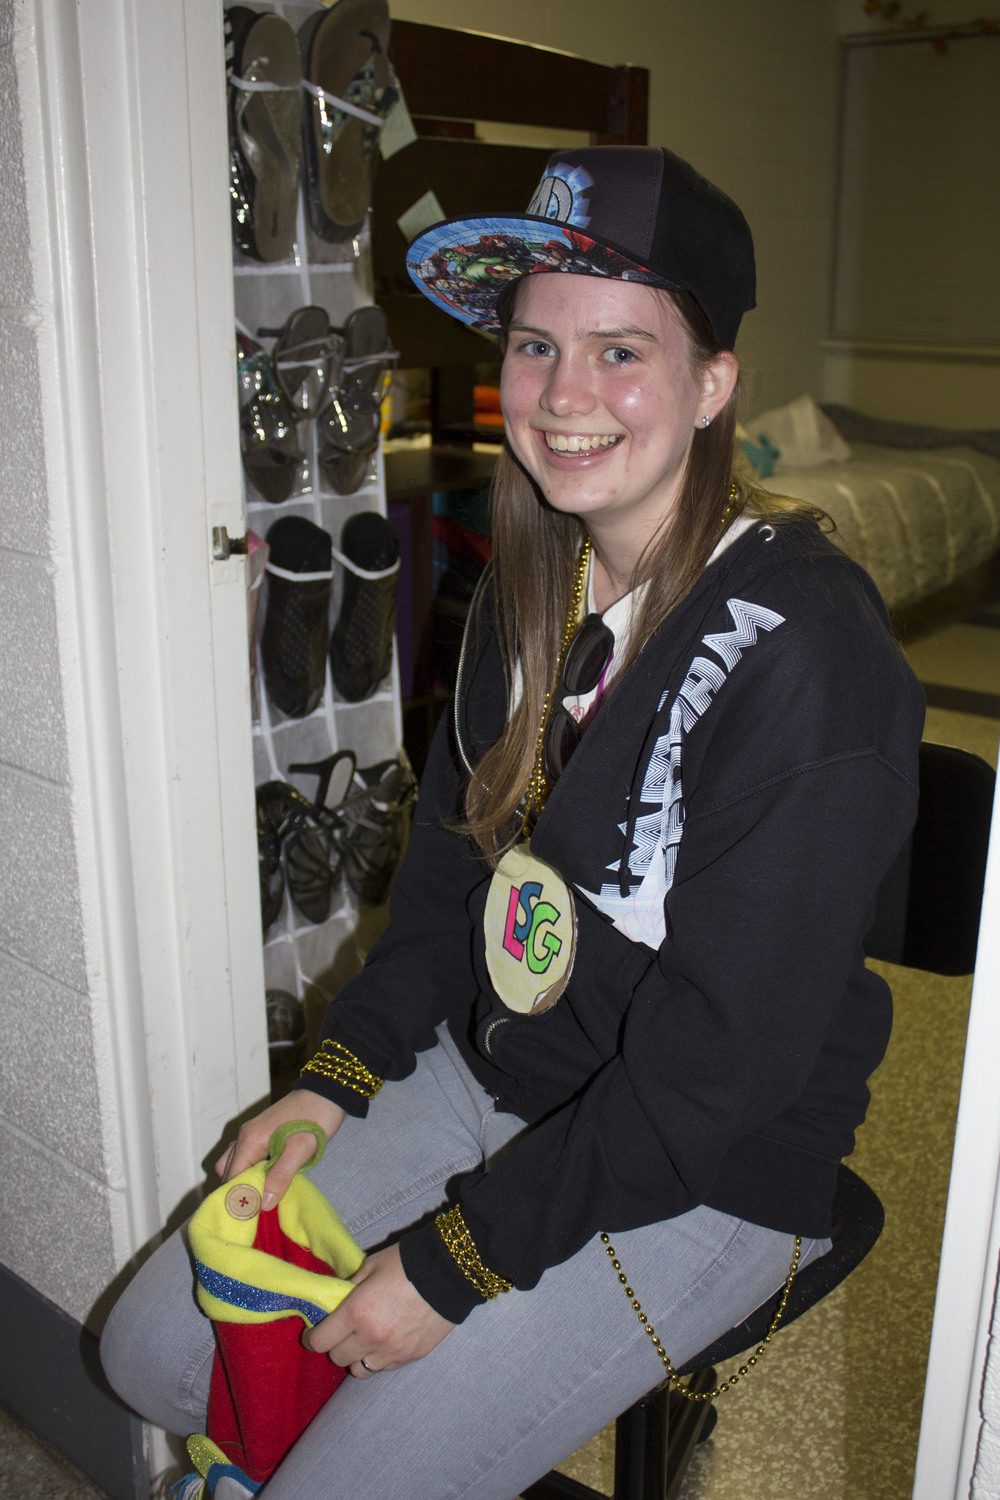 Sophomore Sarah Garrett, dressed as a gangster, holds her stocking full of candy to hand out to children passing by.